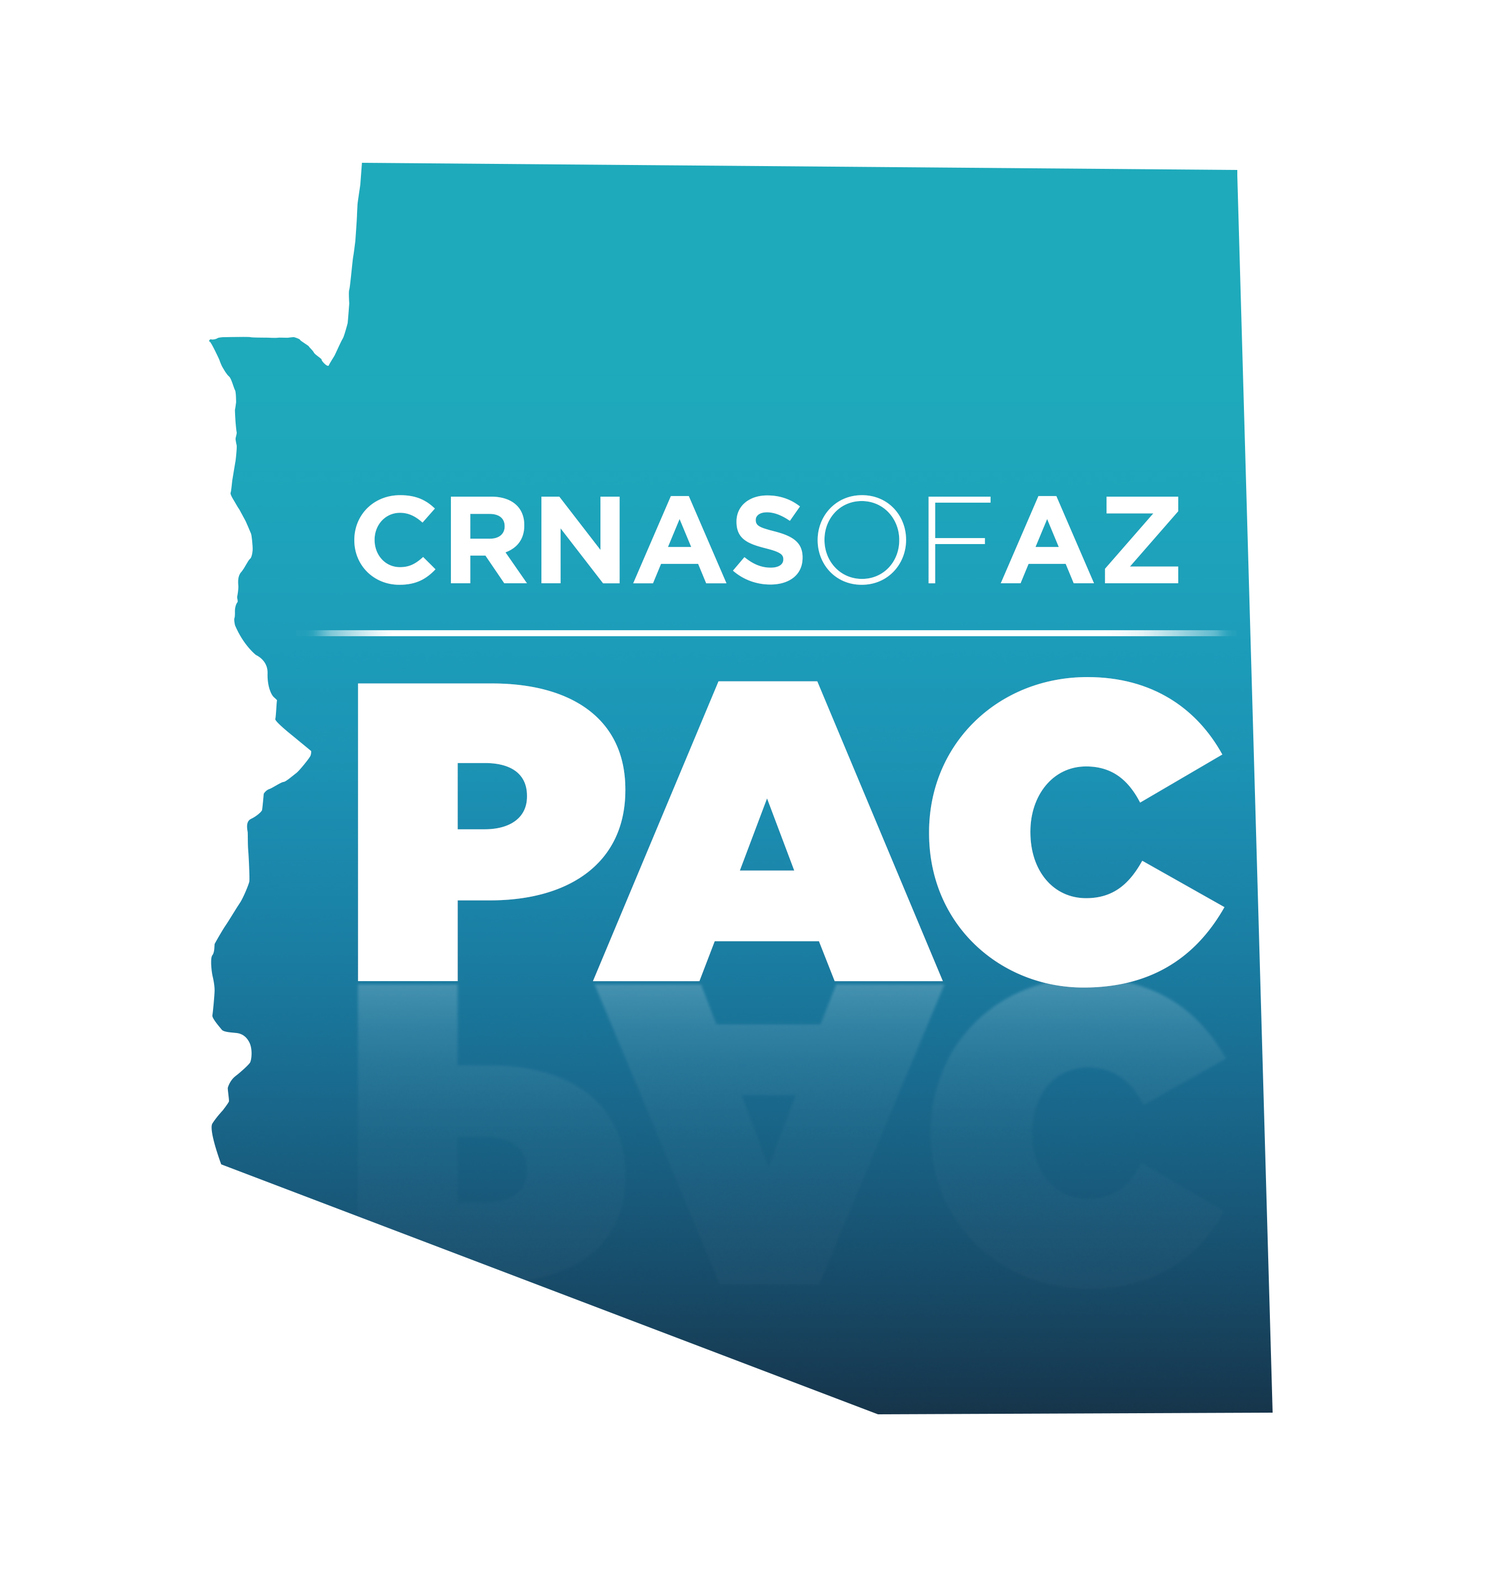 CRNAs of AZ Political Action Committee